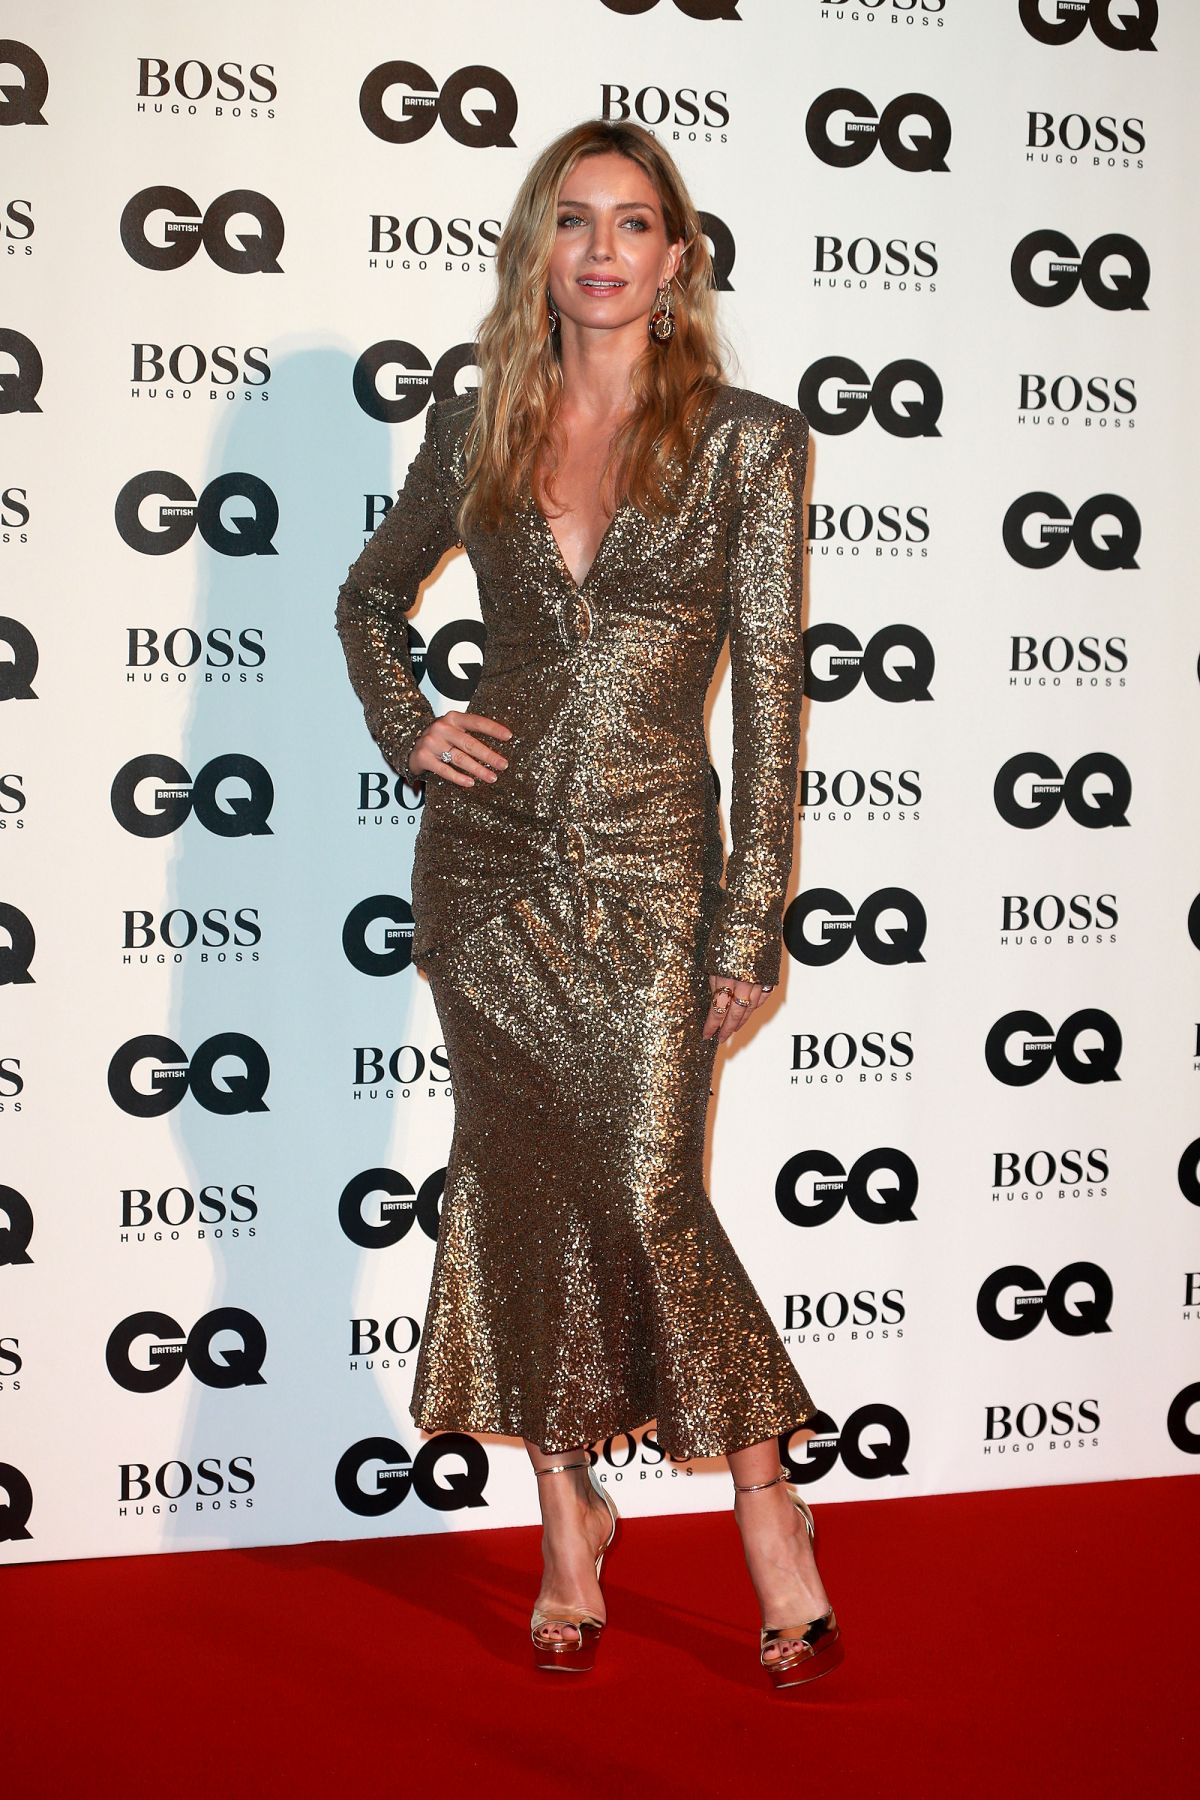 ANNABELLE WALLIS at GQ Men of the Year Awards 2017 in London 09/05/2017